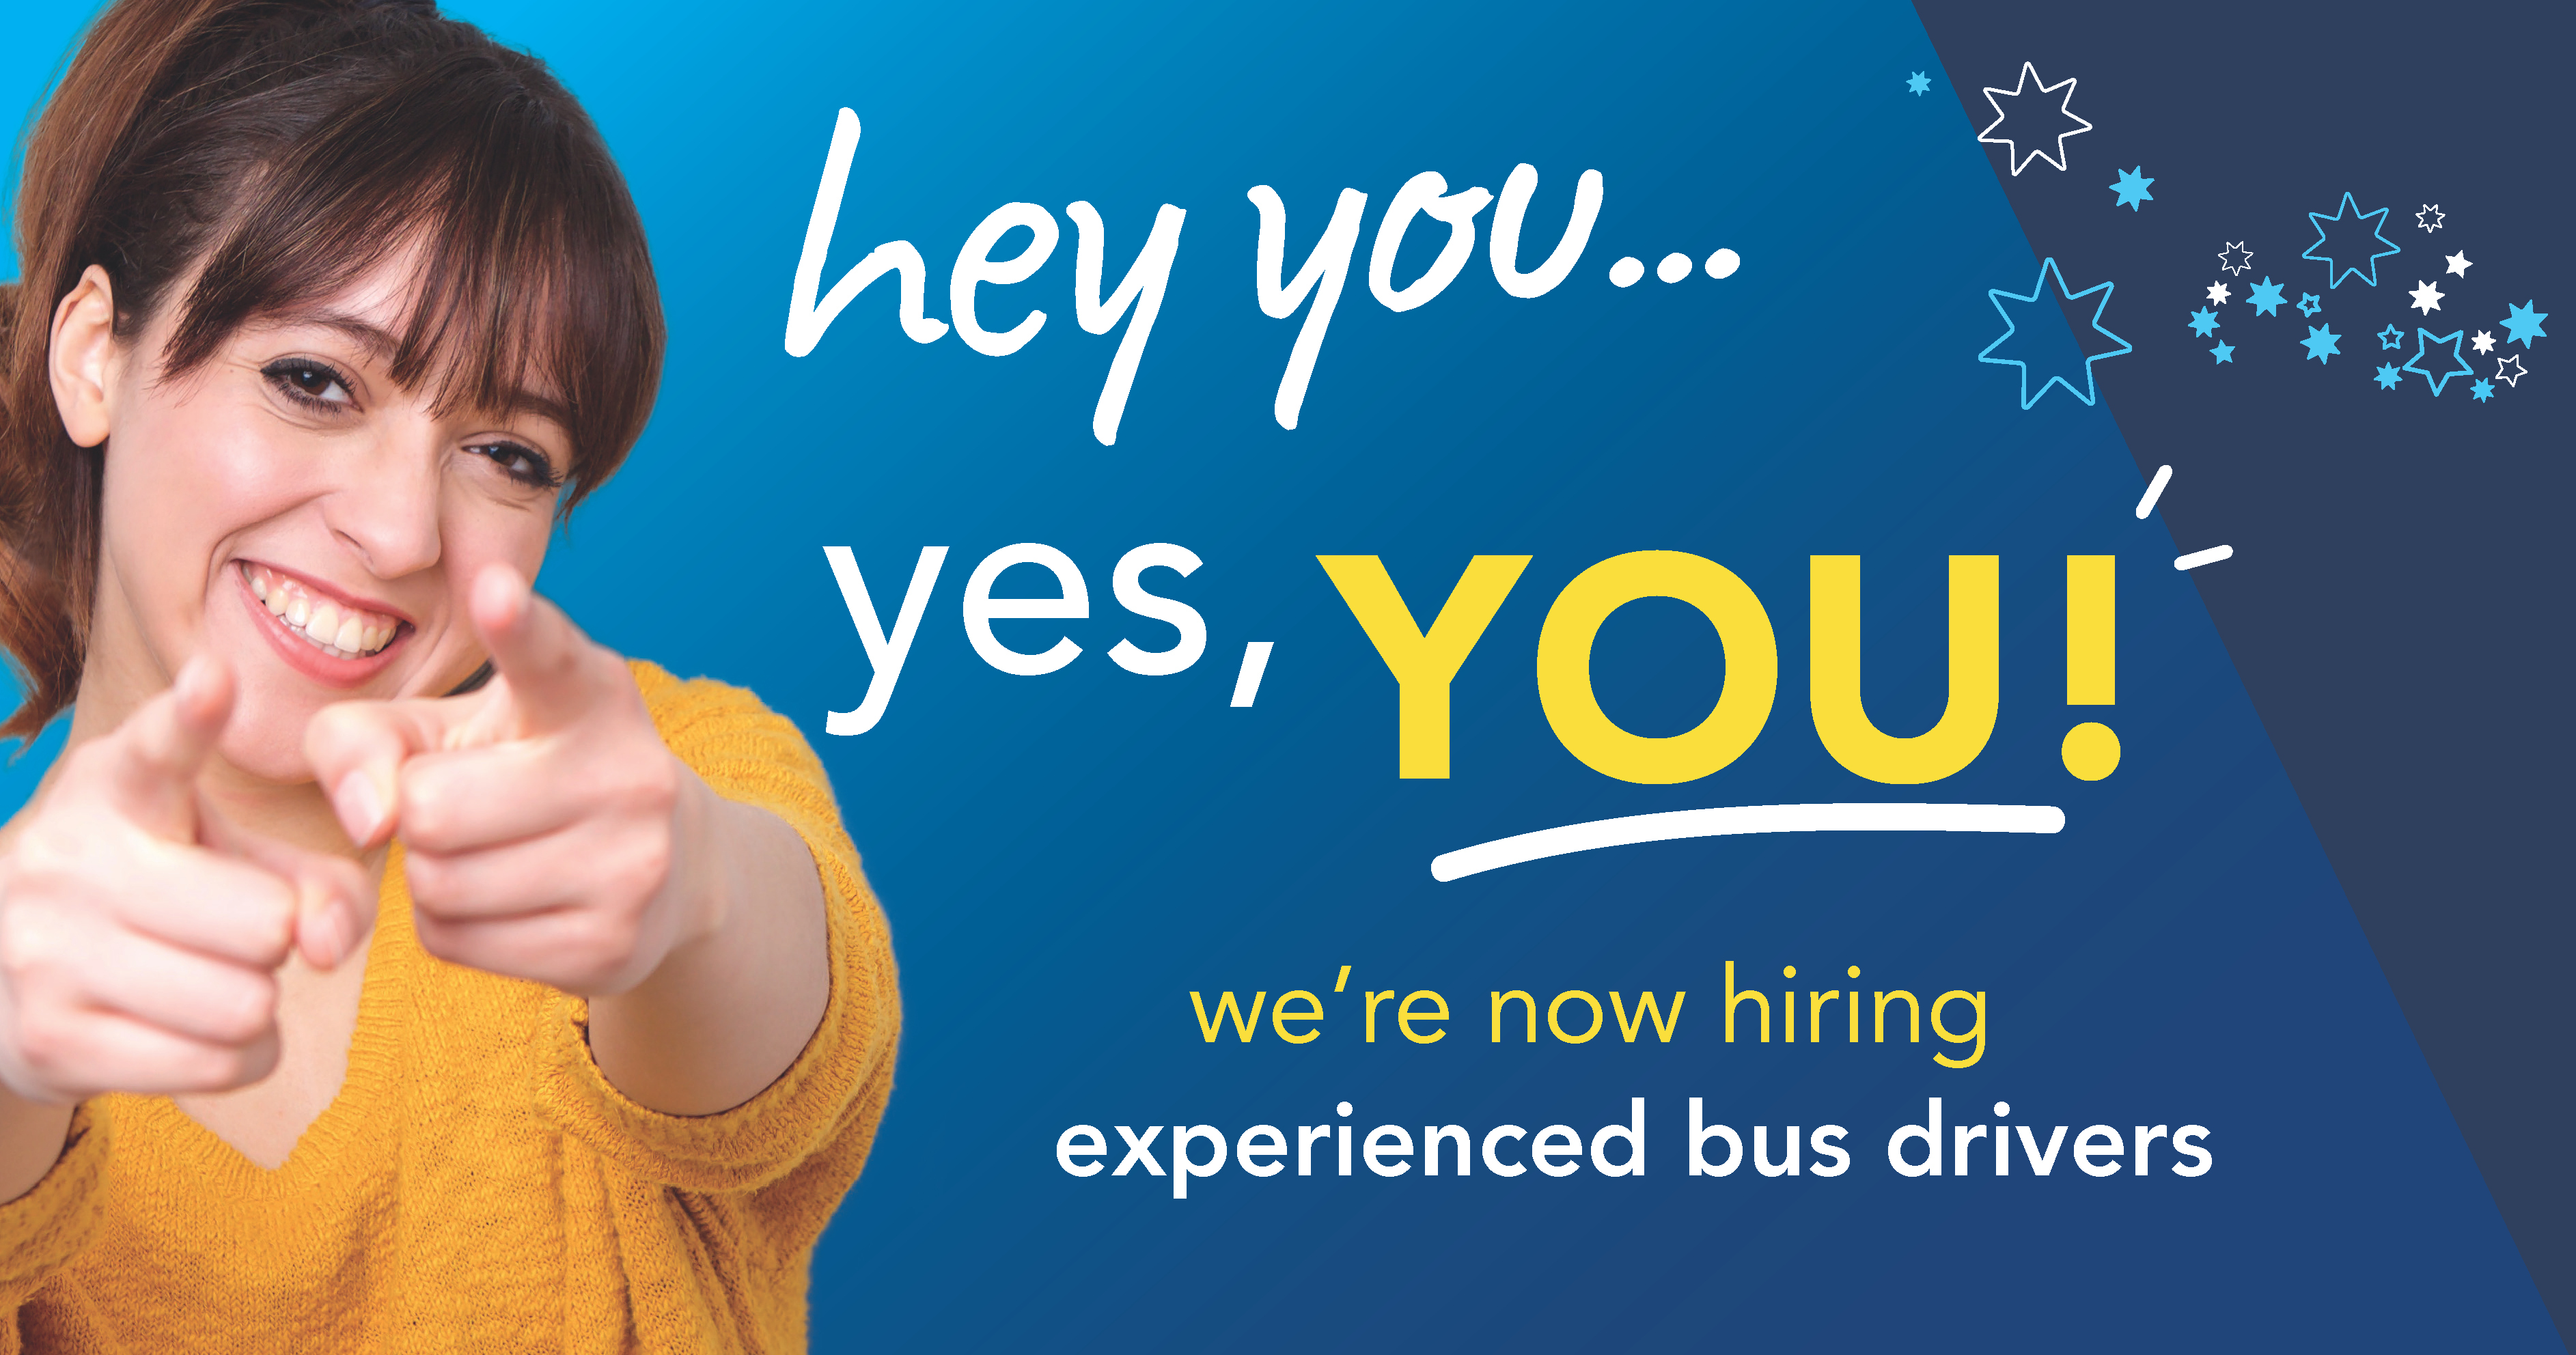 Image of a lady pointing with text reading 'hey you... yes, you! We're now hiring experienced bus drivers'